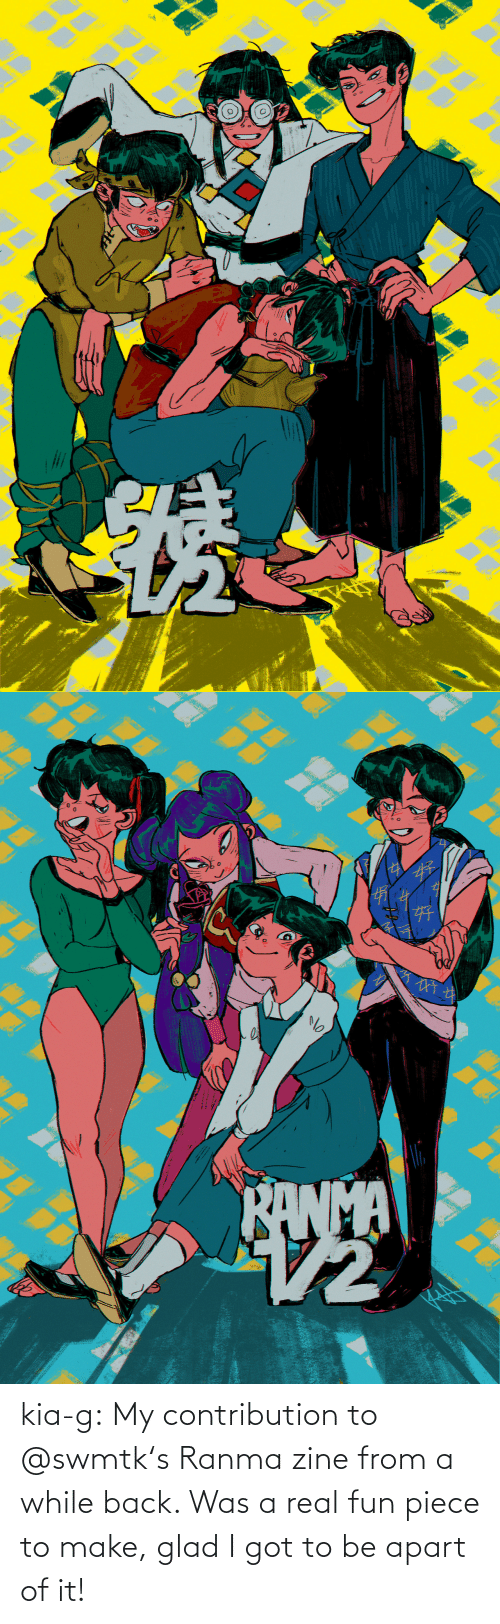 glad: kia-g:  My contribution to @swmtk's Ranma zine from a while back. Was a real fun piece to make, glad I got to be apart of it!